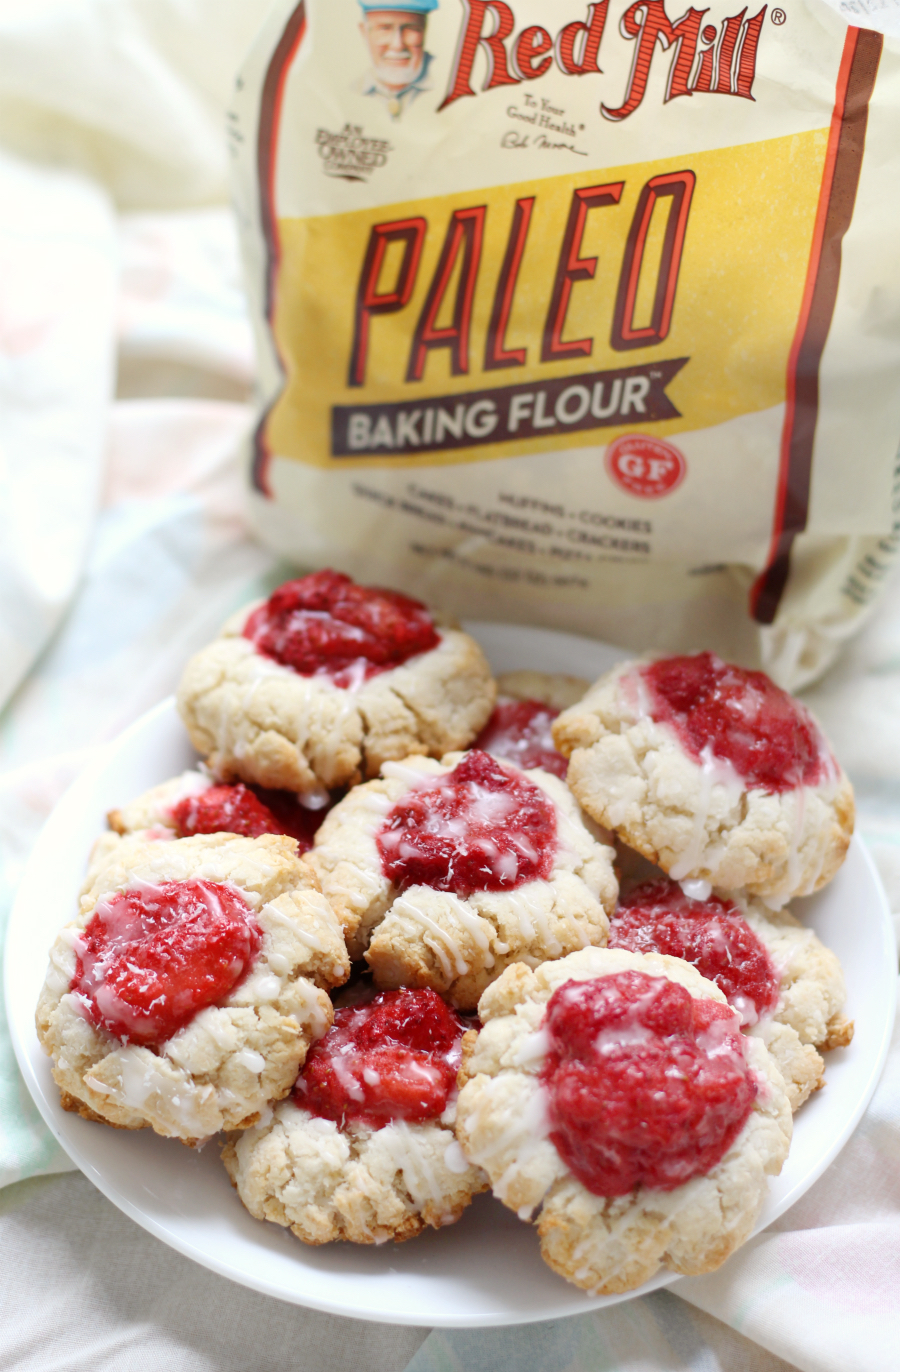 Paleo Strawberry Coconut Thumbprint Cookies (Gluten-Free, Vegan) | Strength and Sunshine @RebeccaGF666 Celebrate the Spring with a batch of Paleo Strawberry Coconut Thumbprint Cookies that are gluten-free, vegan, and grain-free! A fruity dessert recipe you'll be baking up beyond the season! ad BobsSpringBaking @BobsRedMill